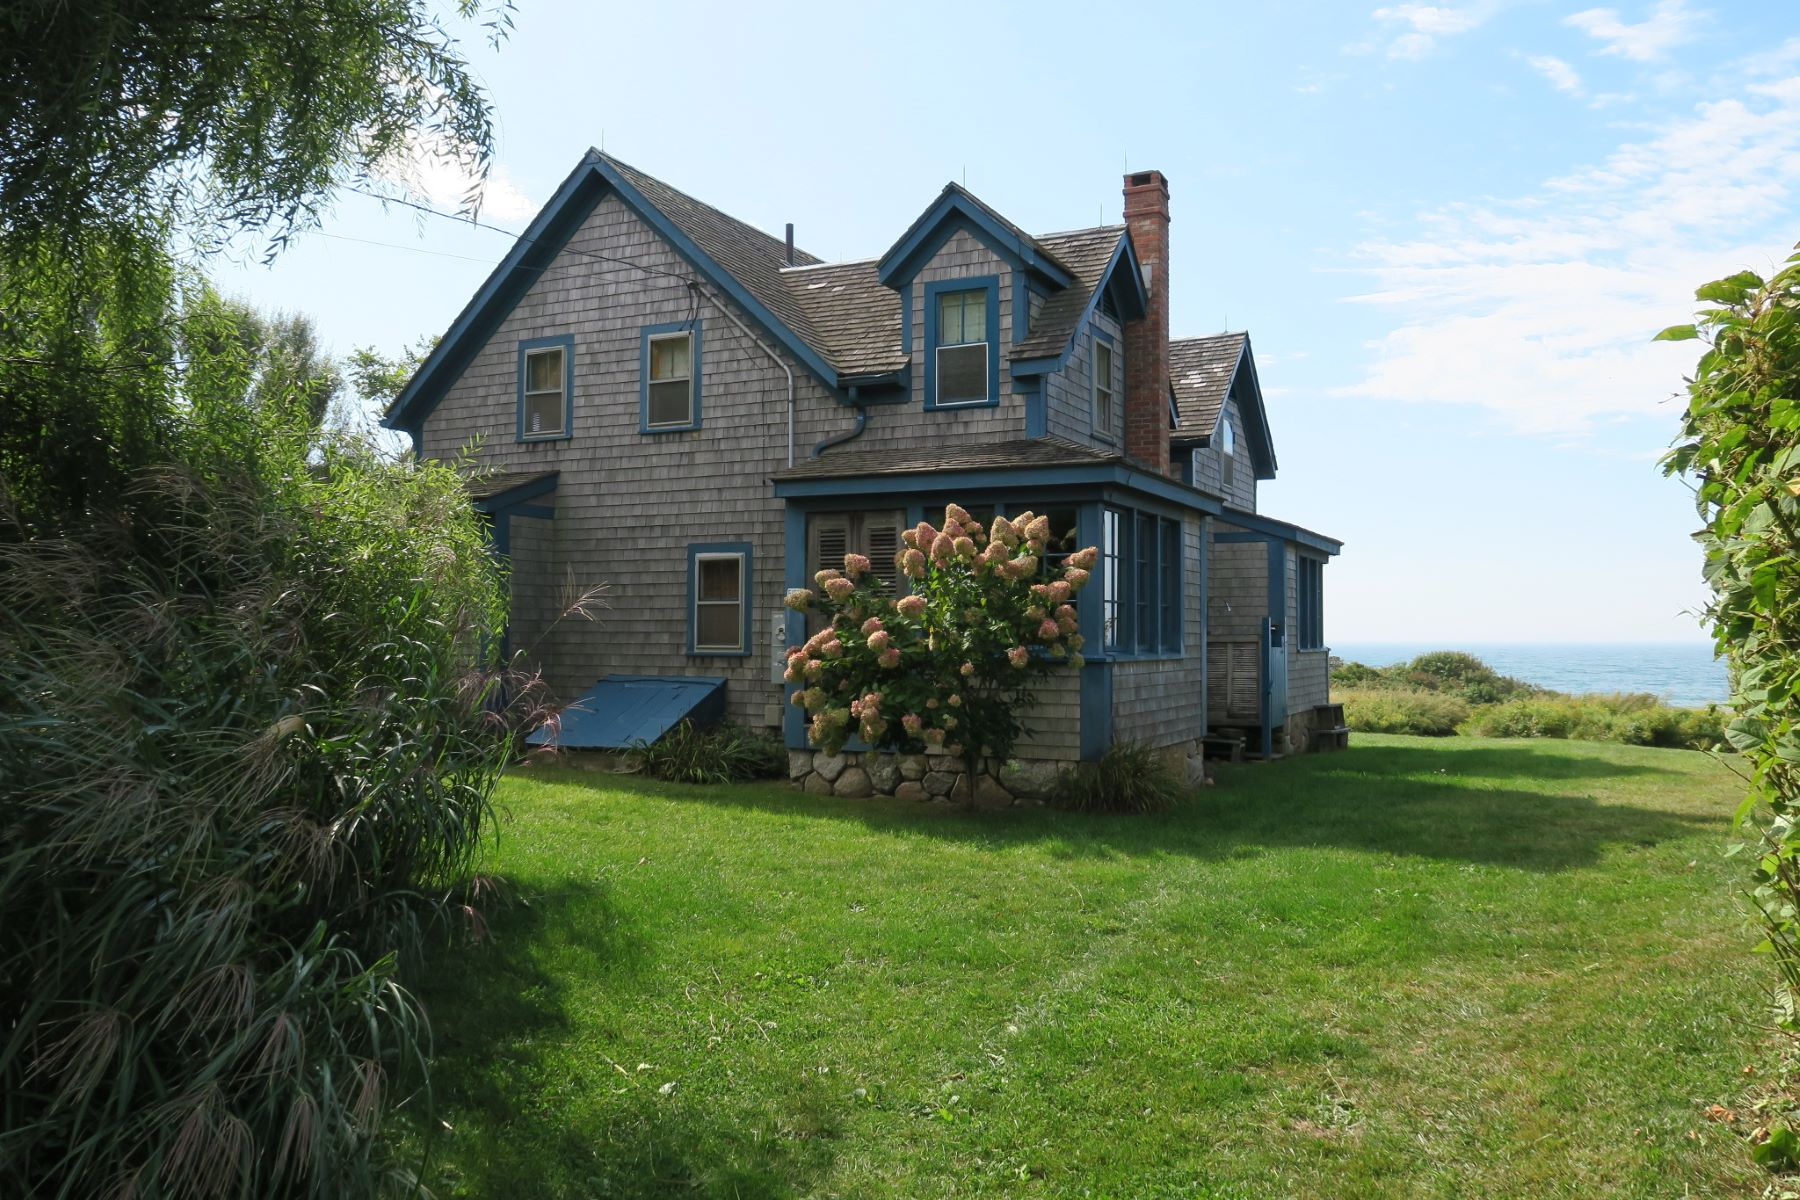 Single Family Homes for Sale at Park 956 off Dorrie's Cove Road Block Island, Rhode Island 02807 United States